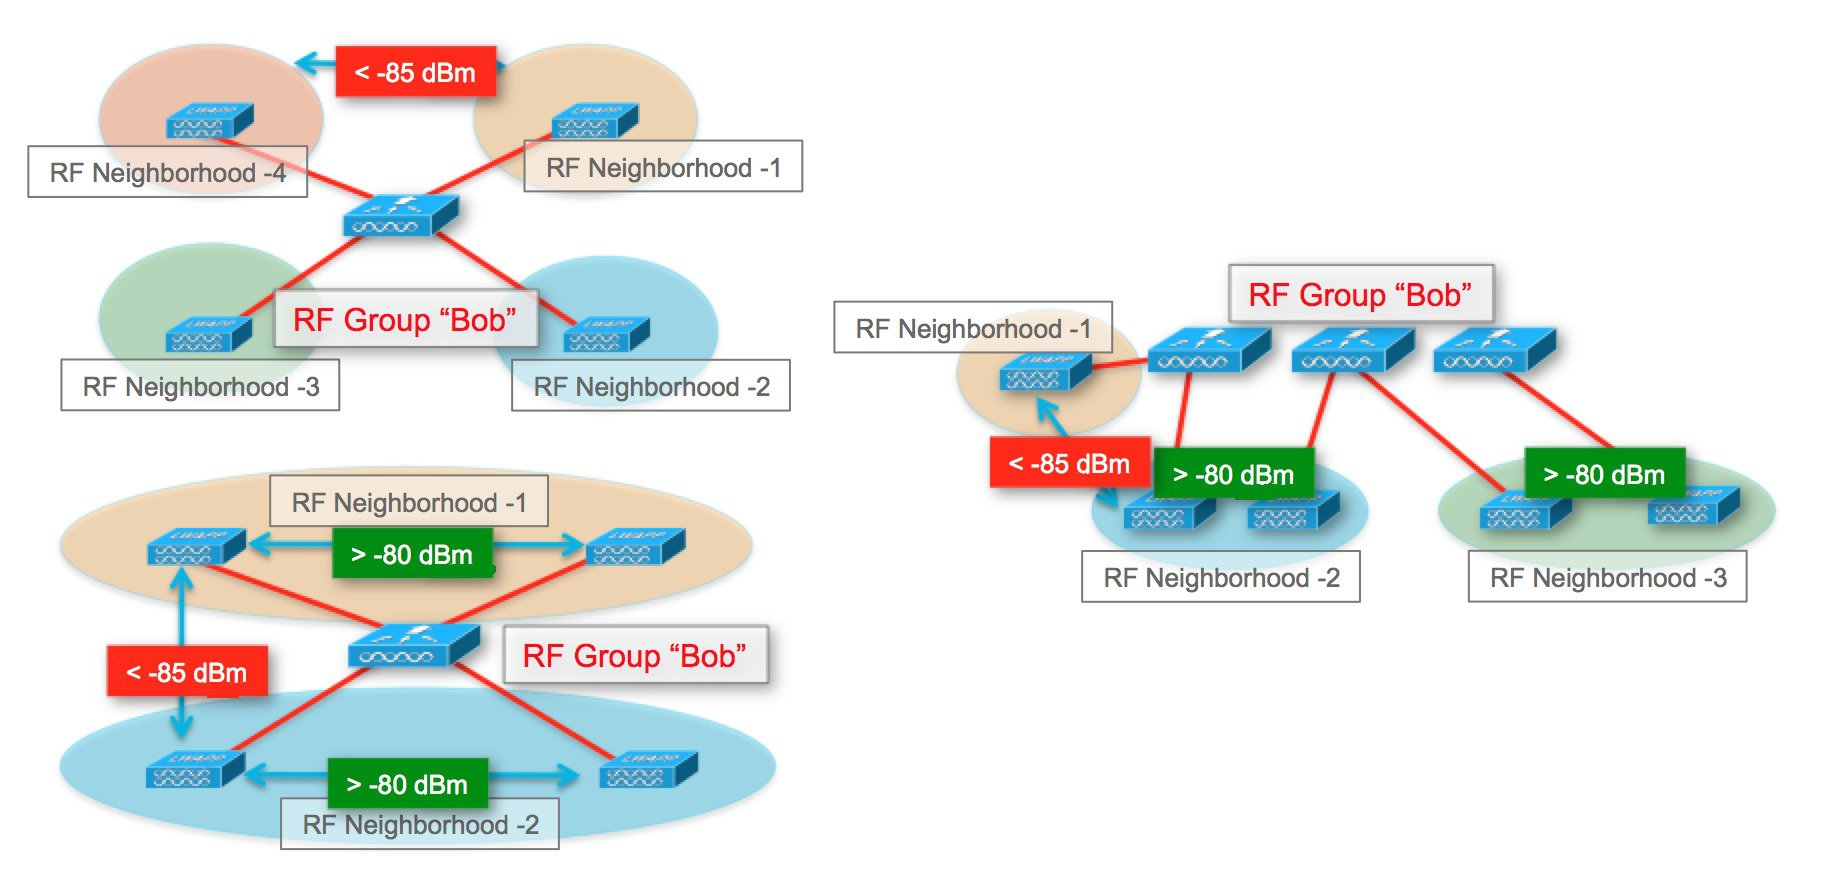 How RF Groups are formed